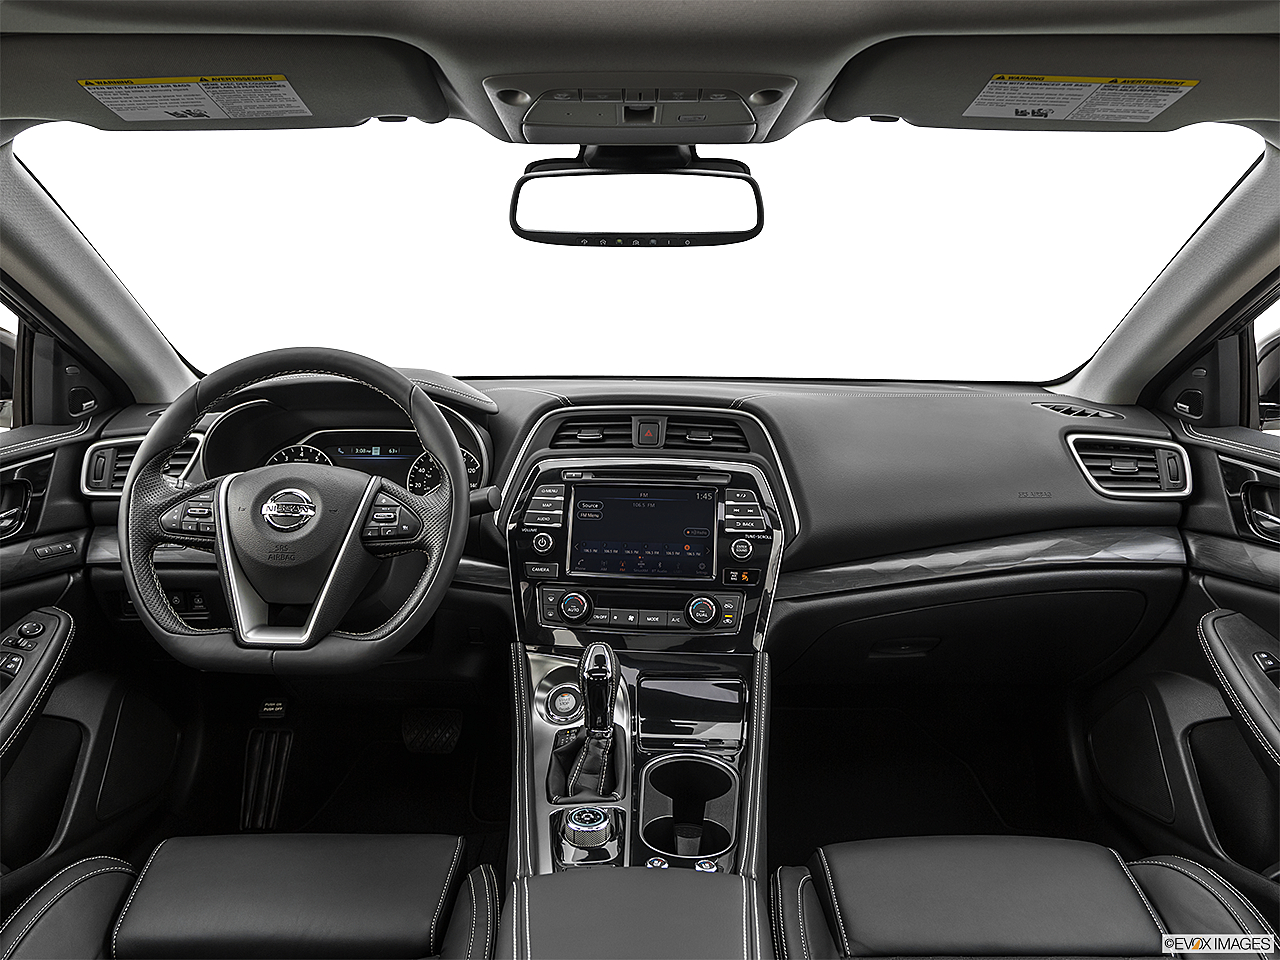 2019 Nissan Maxima Platinum, centered wide dash shot